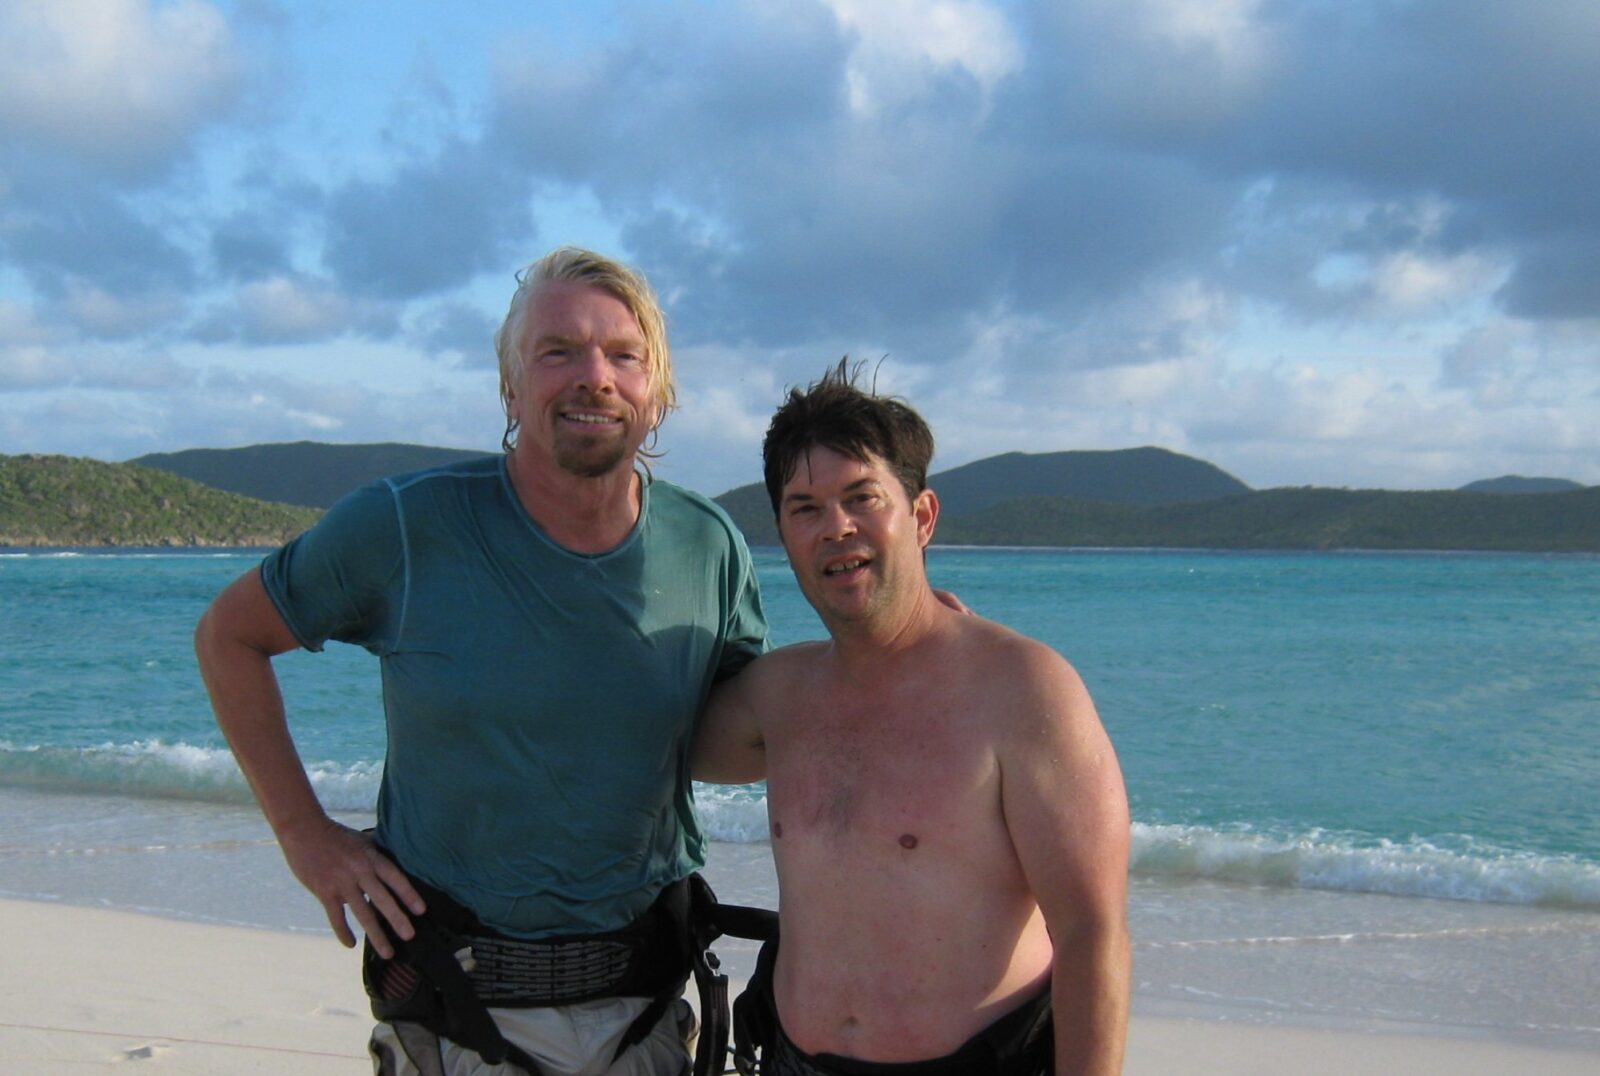 tourism tim warren and richard branson: tourism marketing project